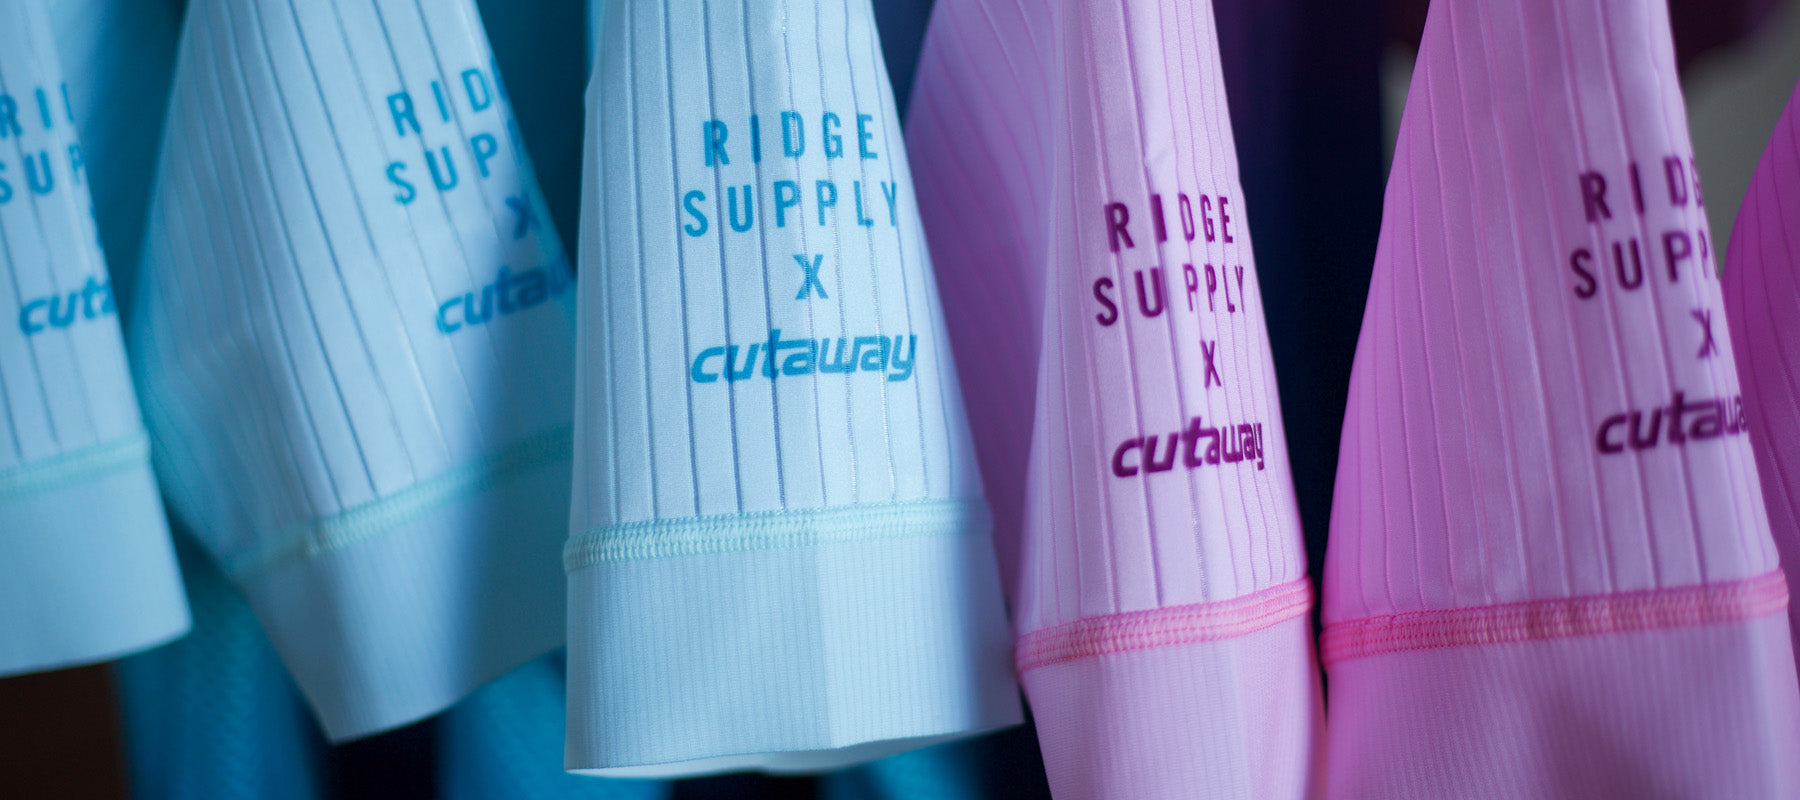 Ridge Supply X Cutaway Mist